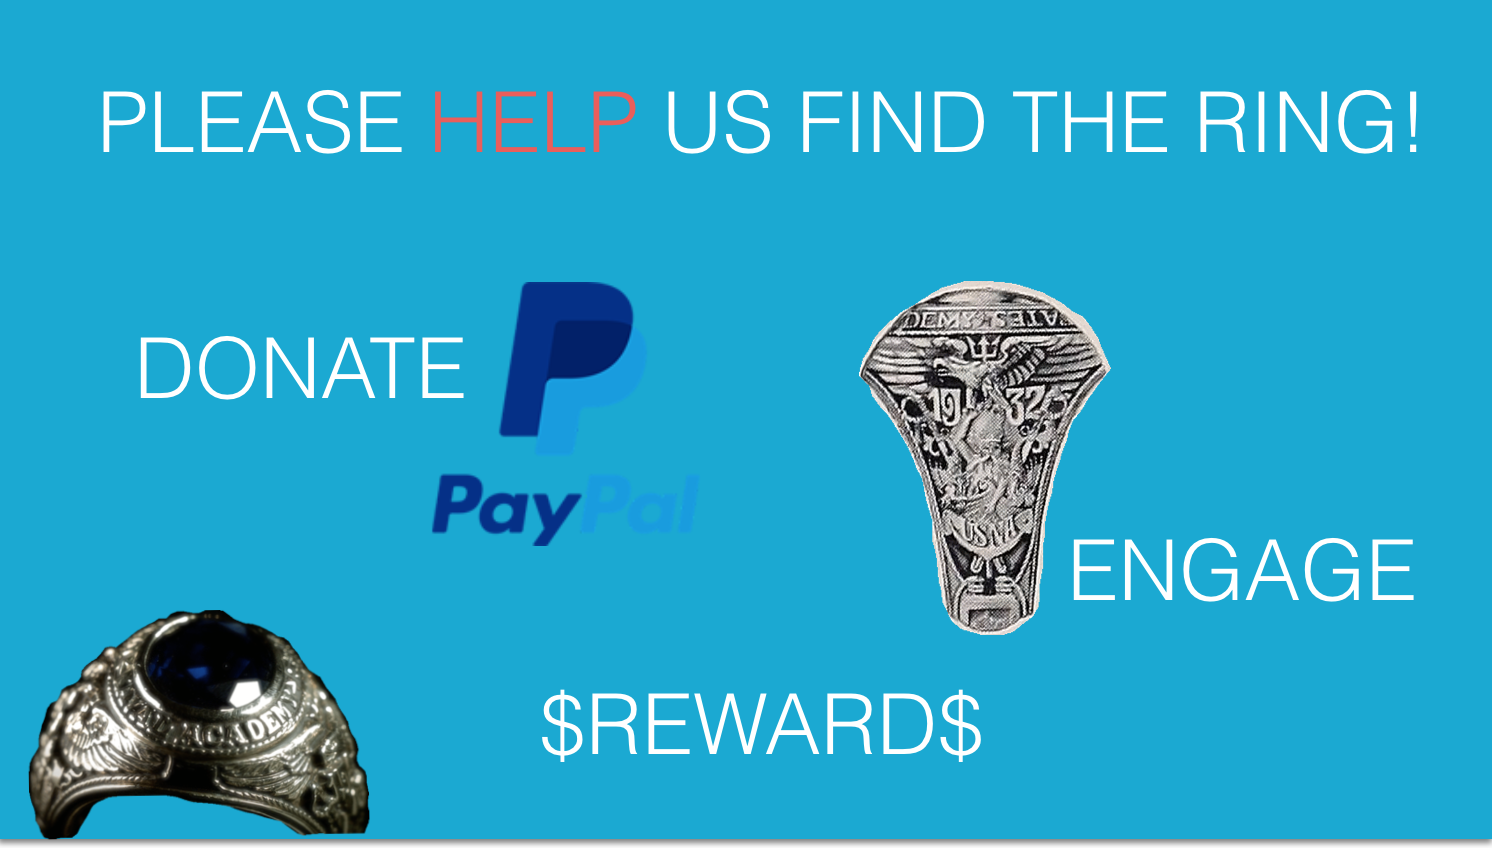 Help by providing information, encouragement or even a donation. For the finder, there is a reward of $10,000.